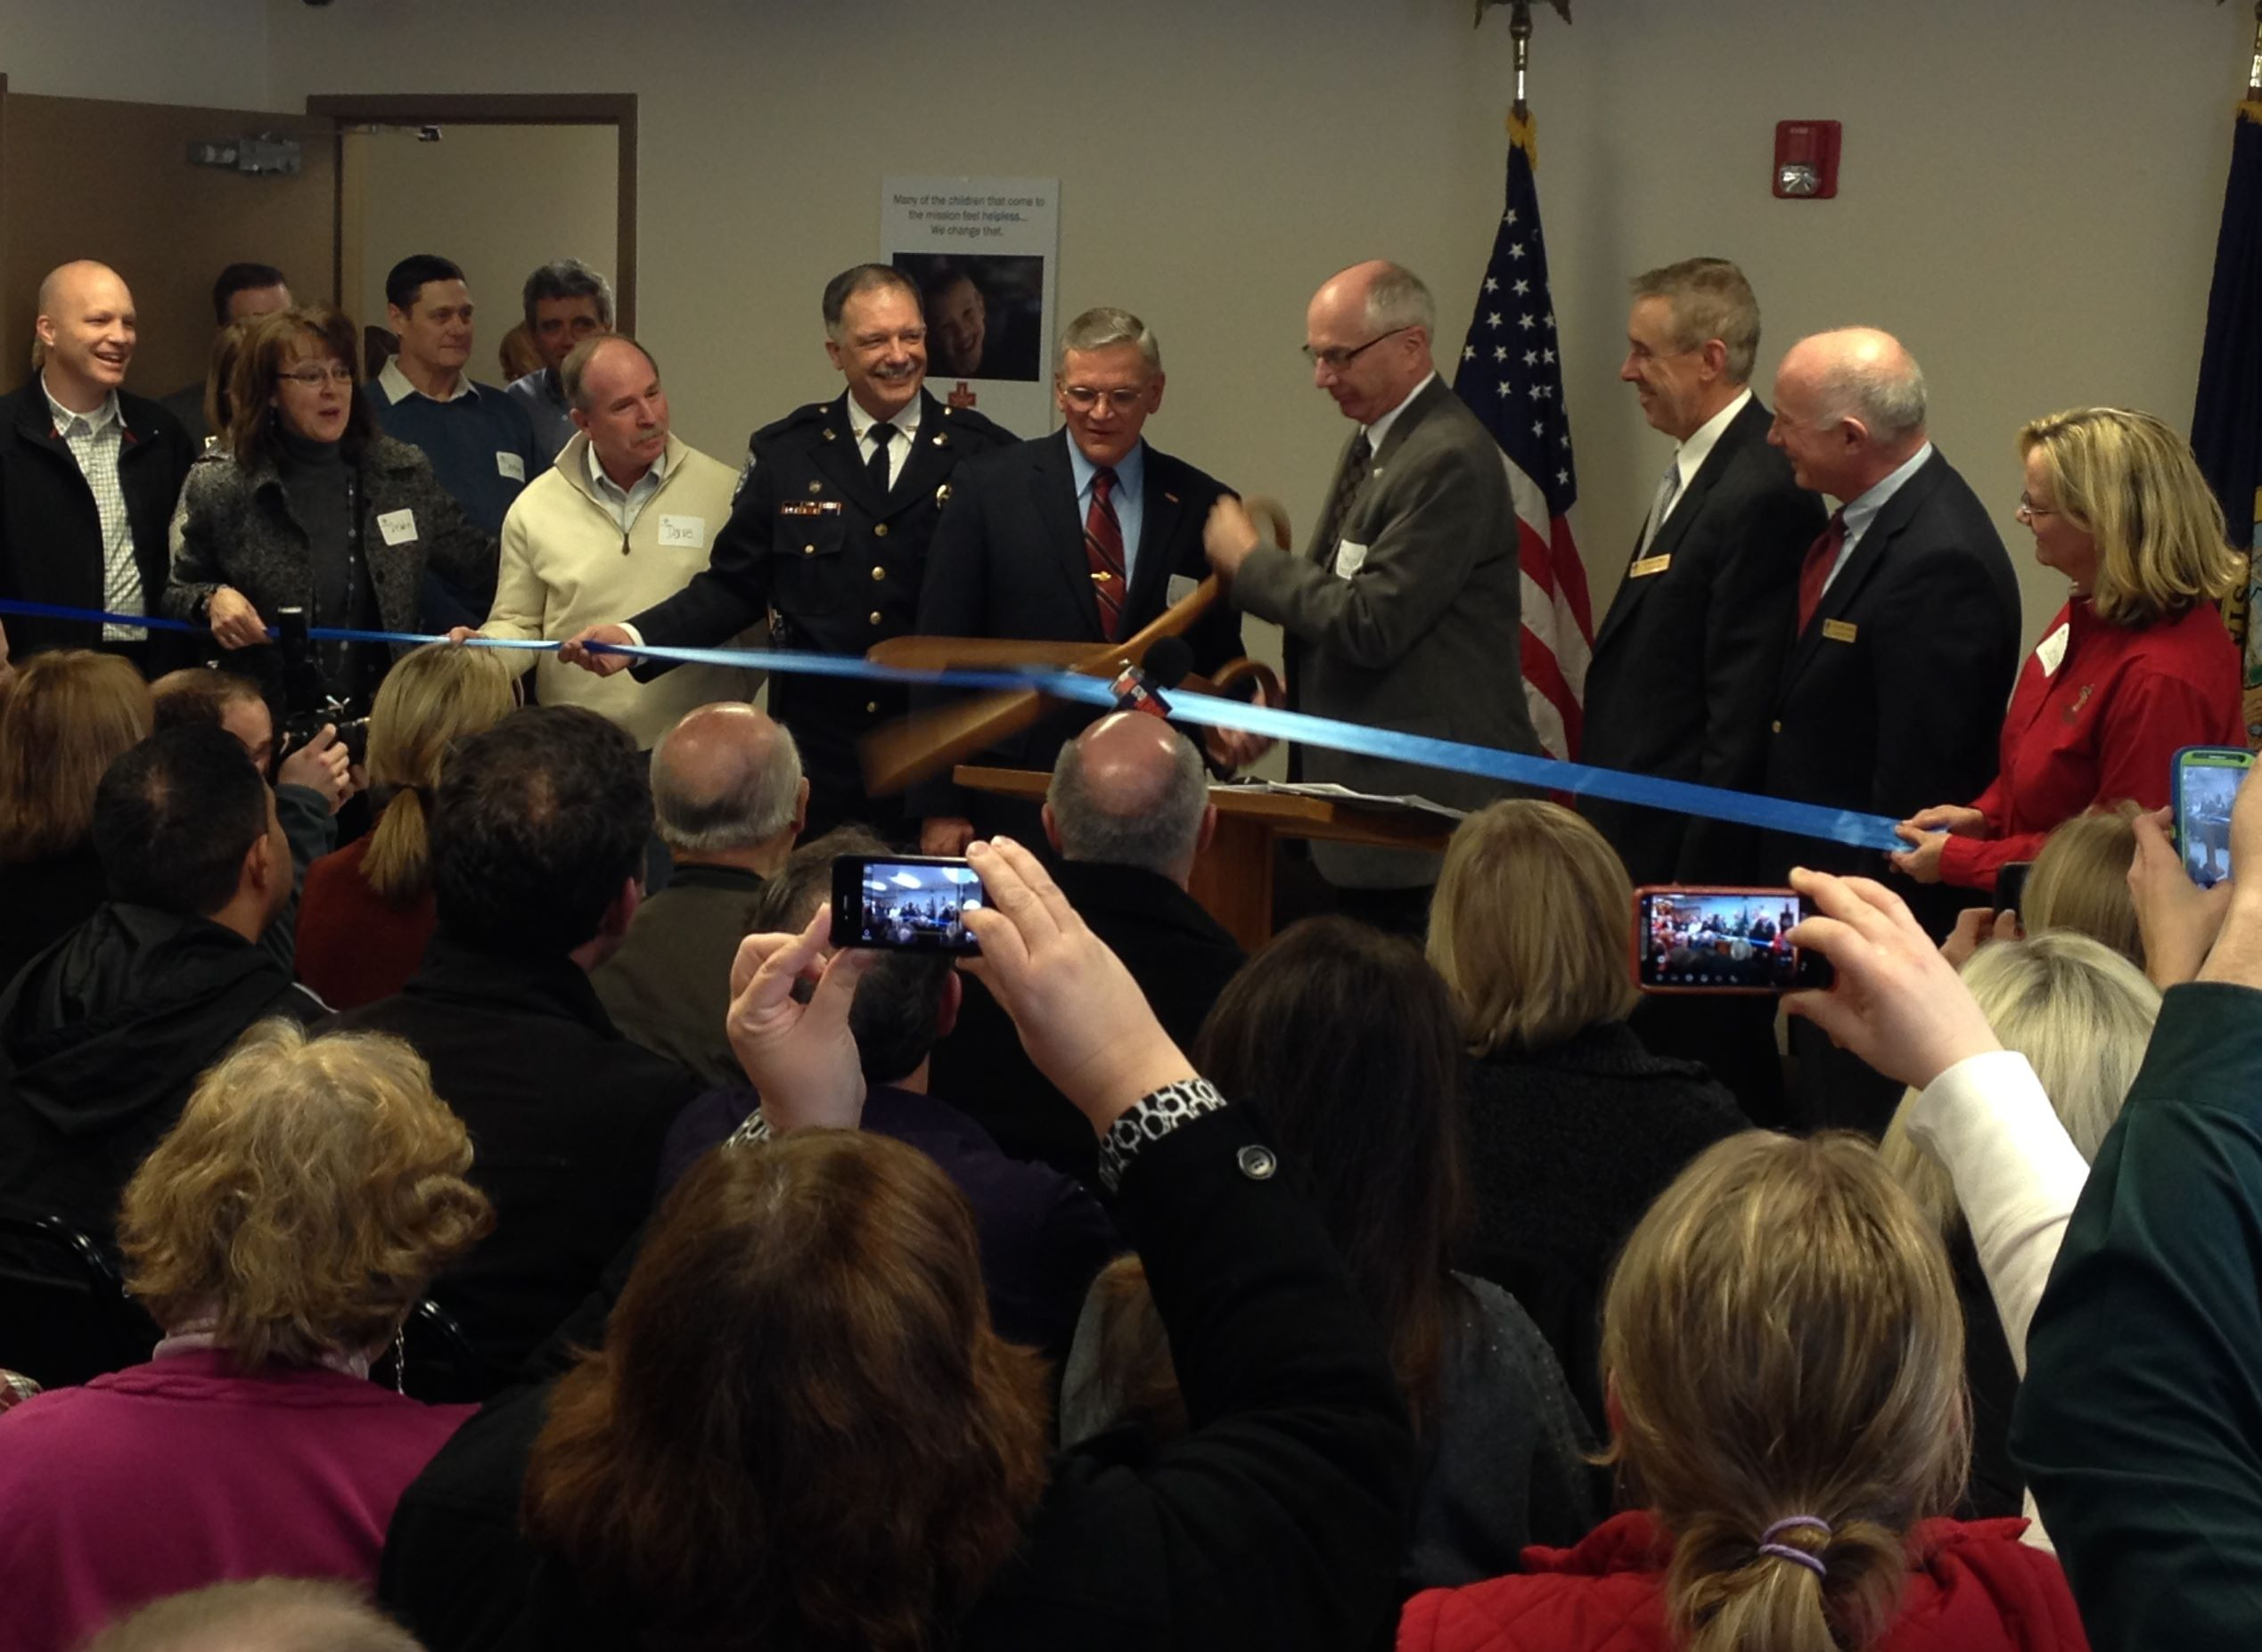 Mayor Bob Henry cuts the ribbon to open the Nampa shelter for women and children, operated by the Boise Rescue Mission.